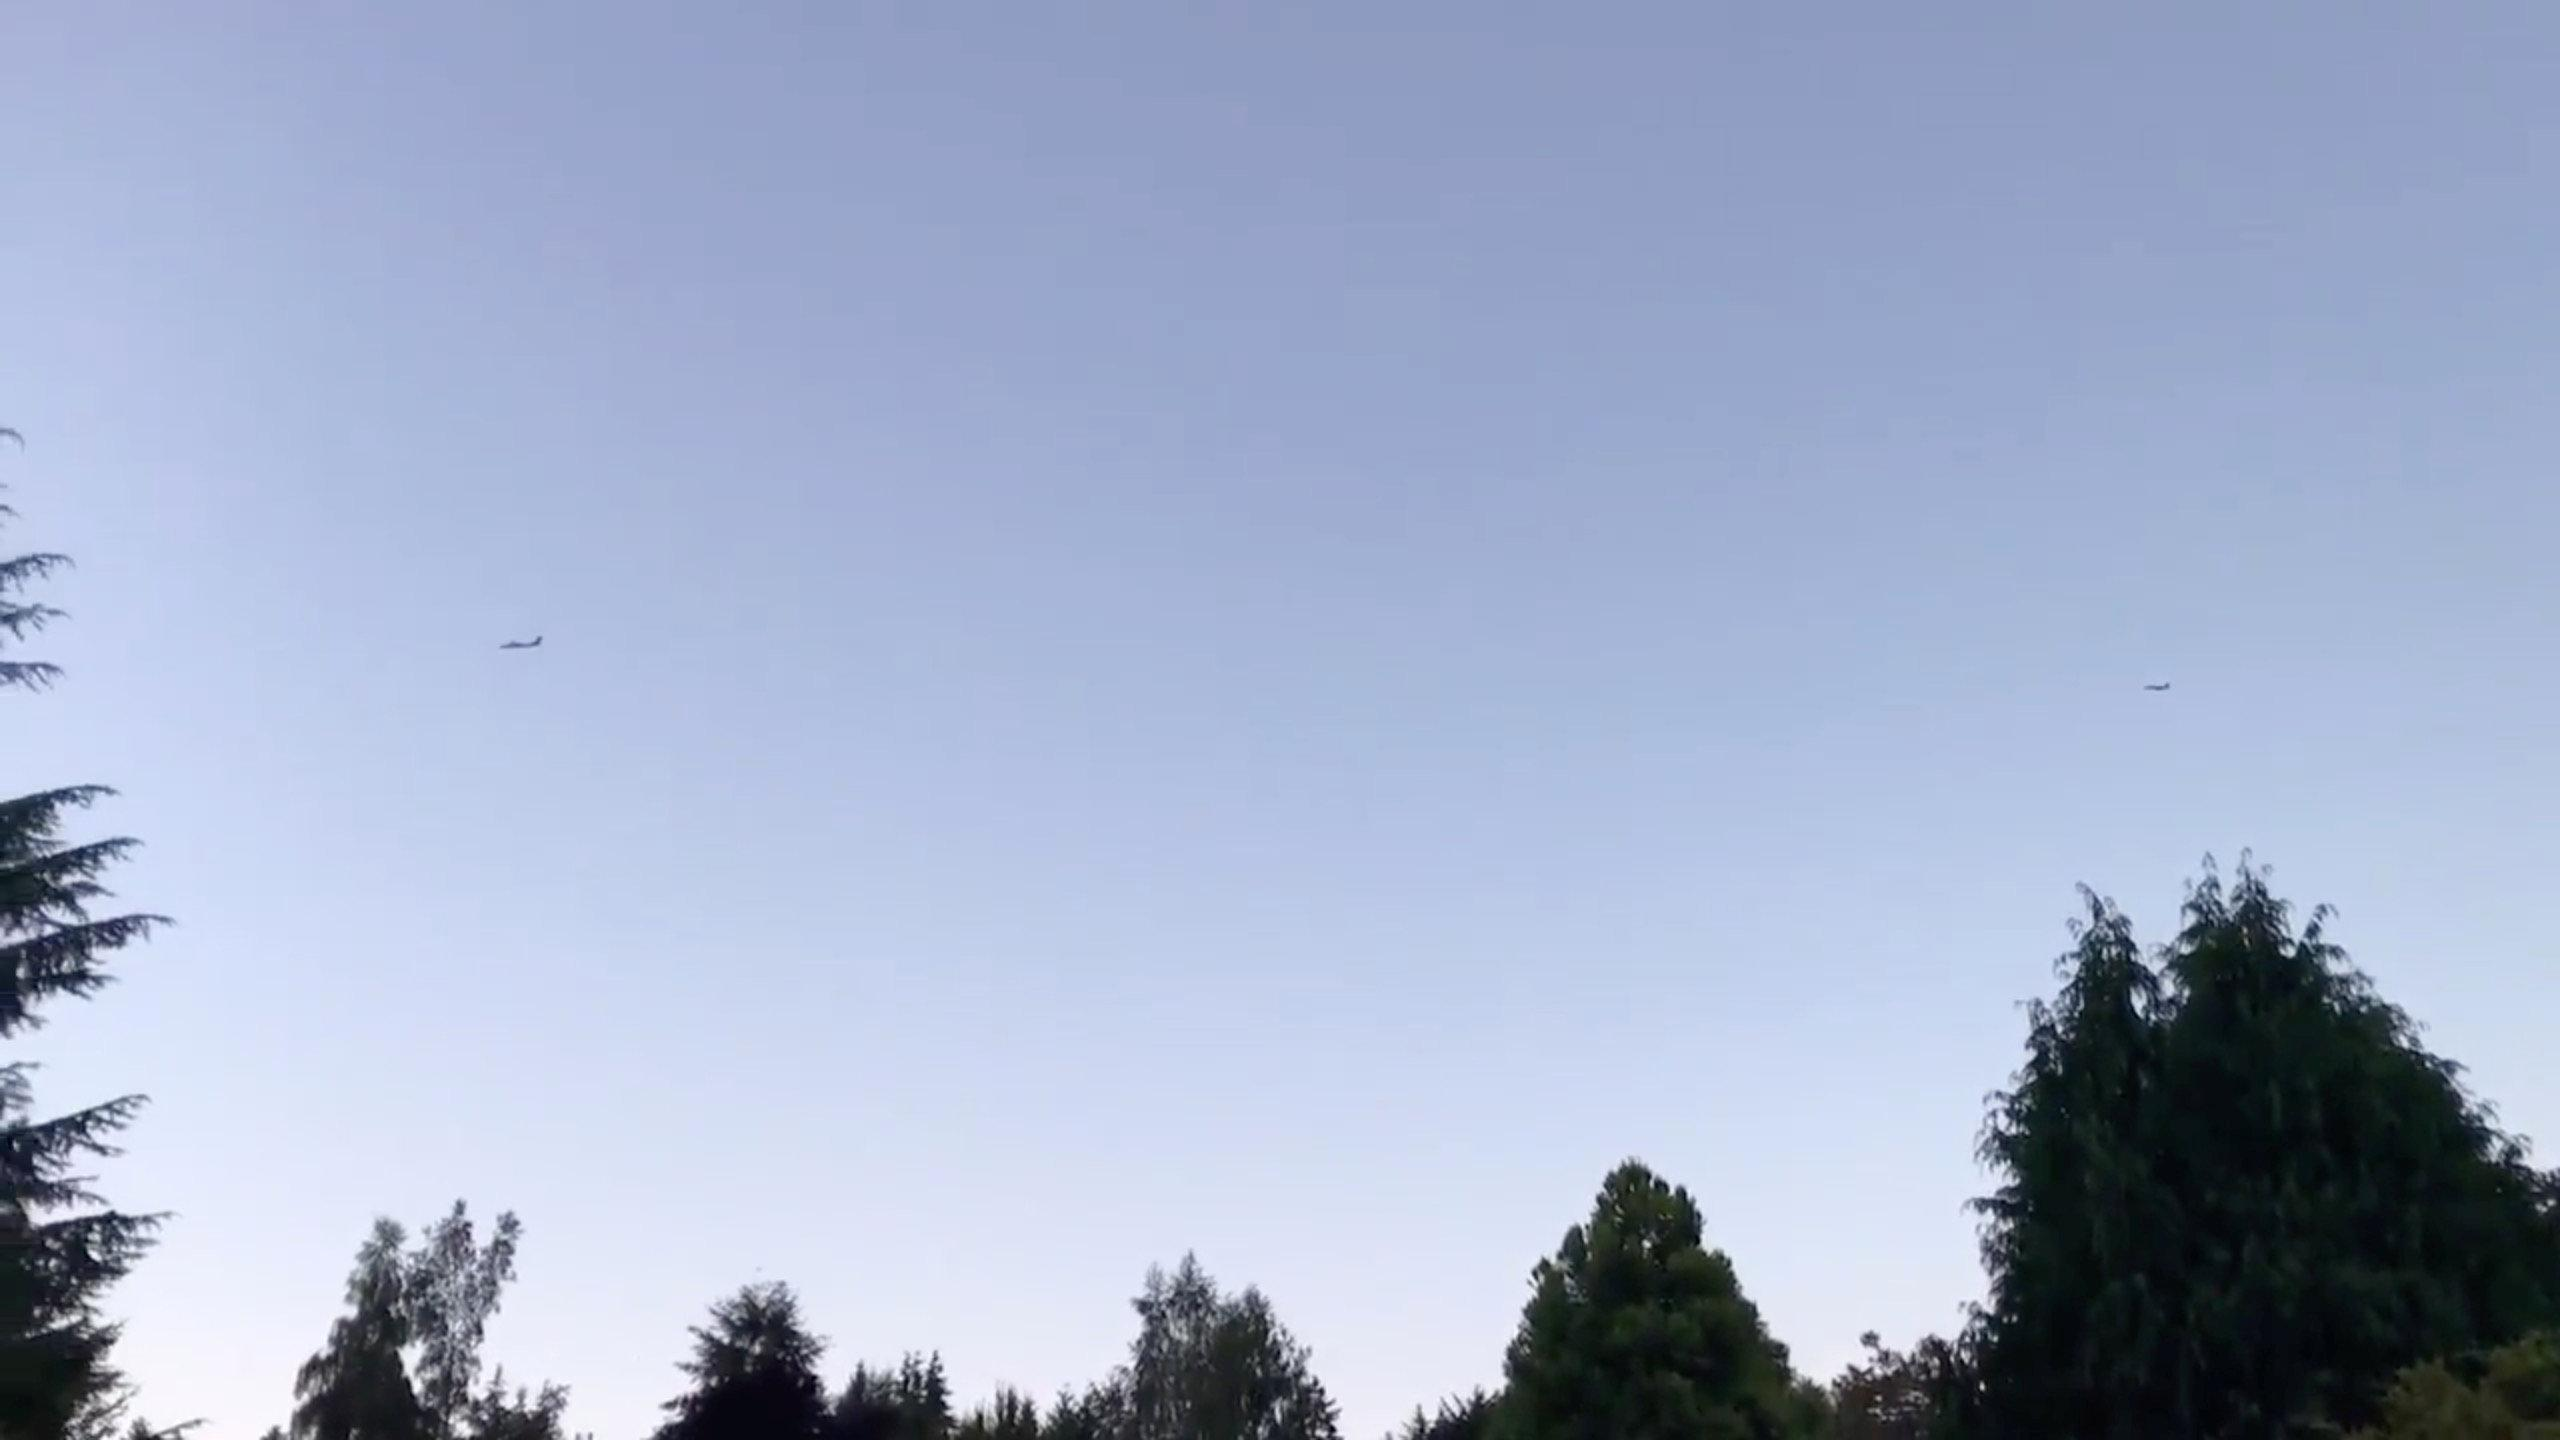 An F-15 jet attempts to intercept a Horizon Air Bombardier Dash 8 Q400, which was reported to be hijacked, in Fircrest, Washington, the U.S. before crashing in south Puget Sound, August 10, 2018, in this still image taken from a video obtained from social media. Christopher Maher/via